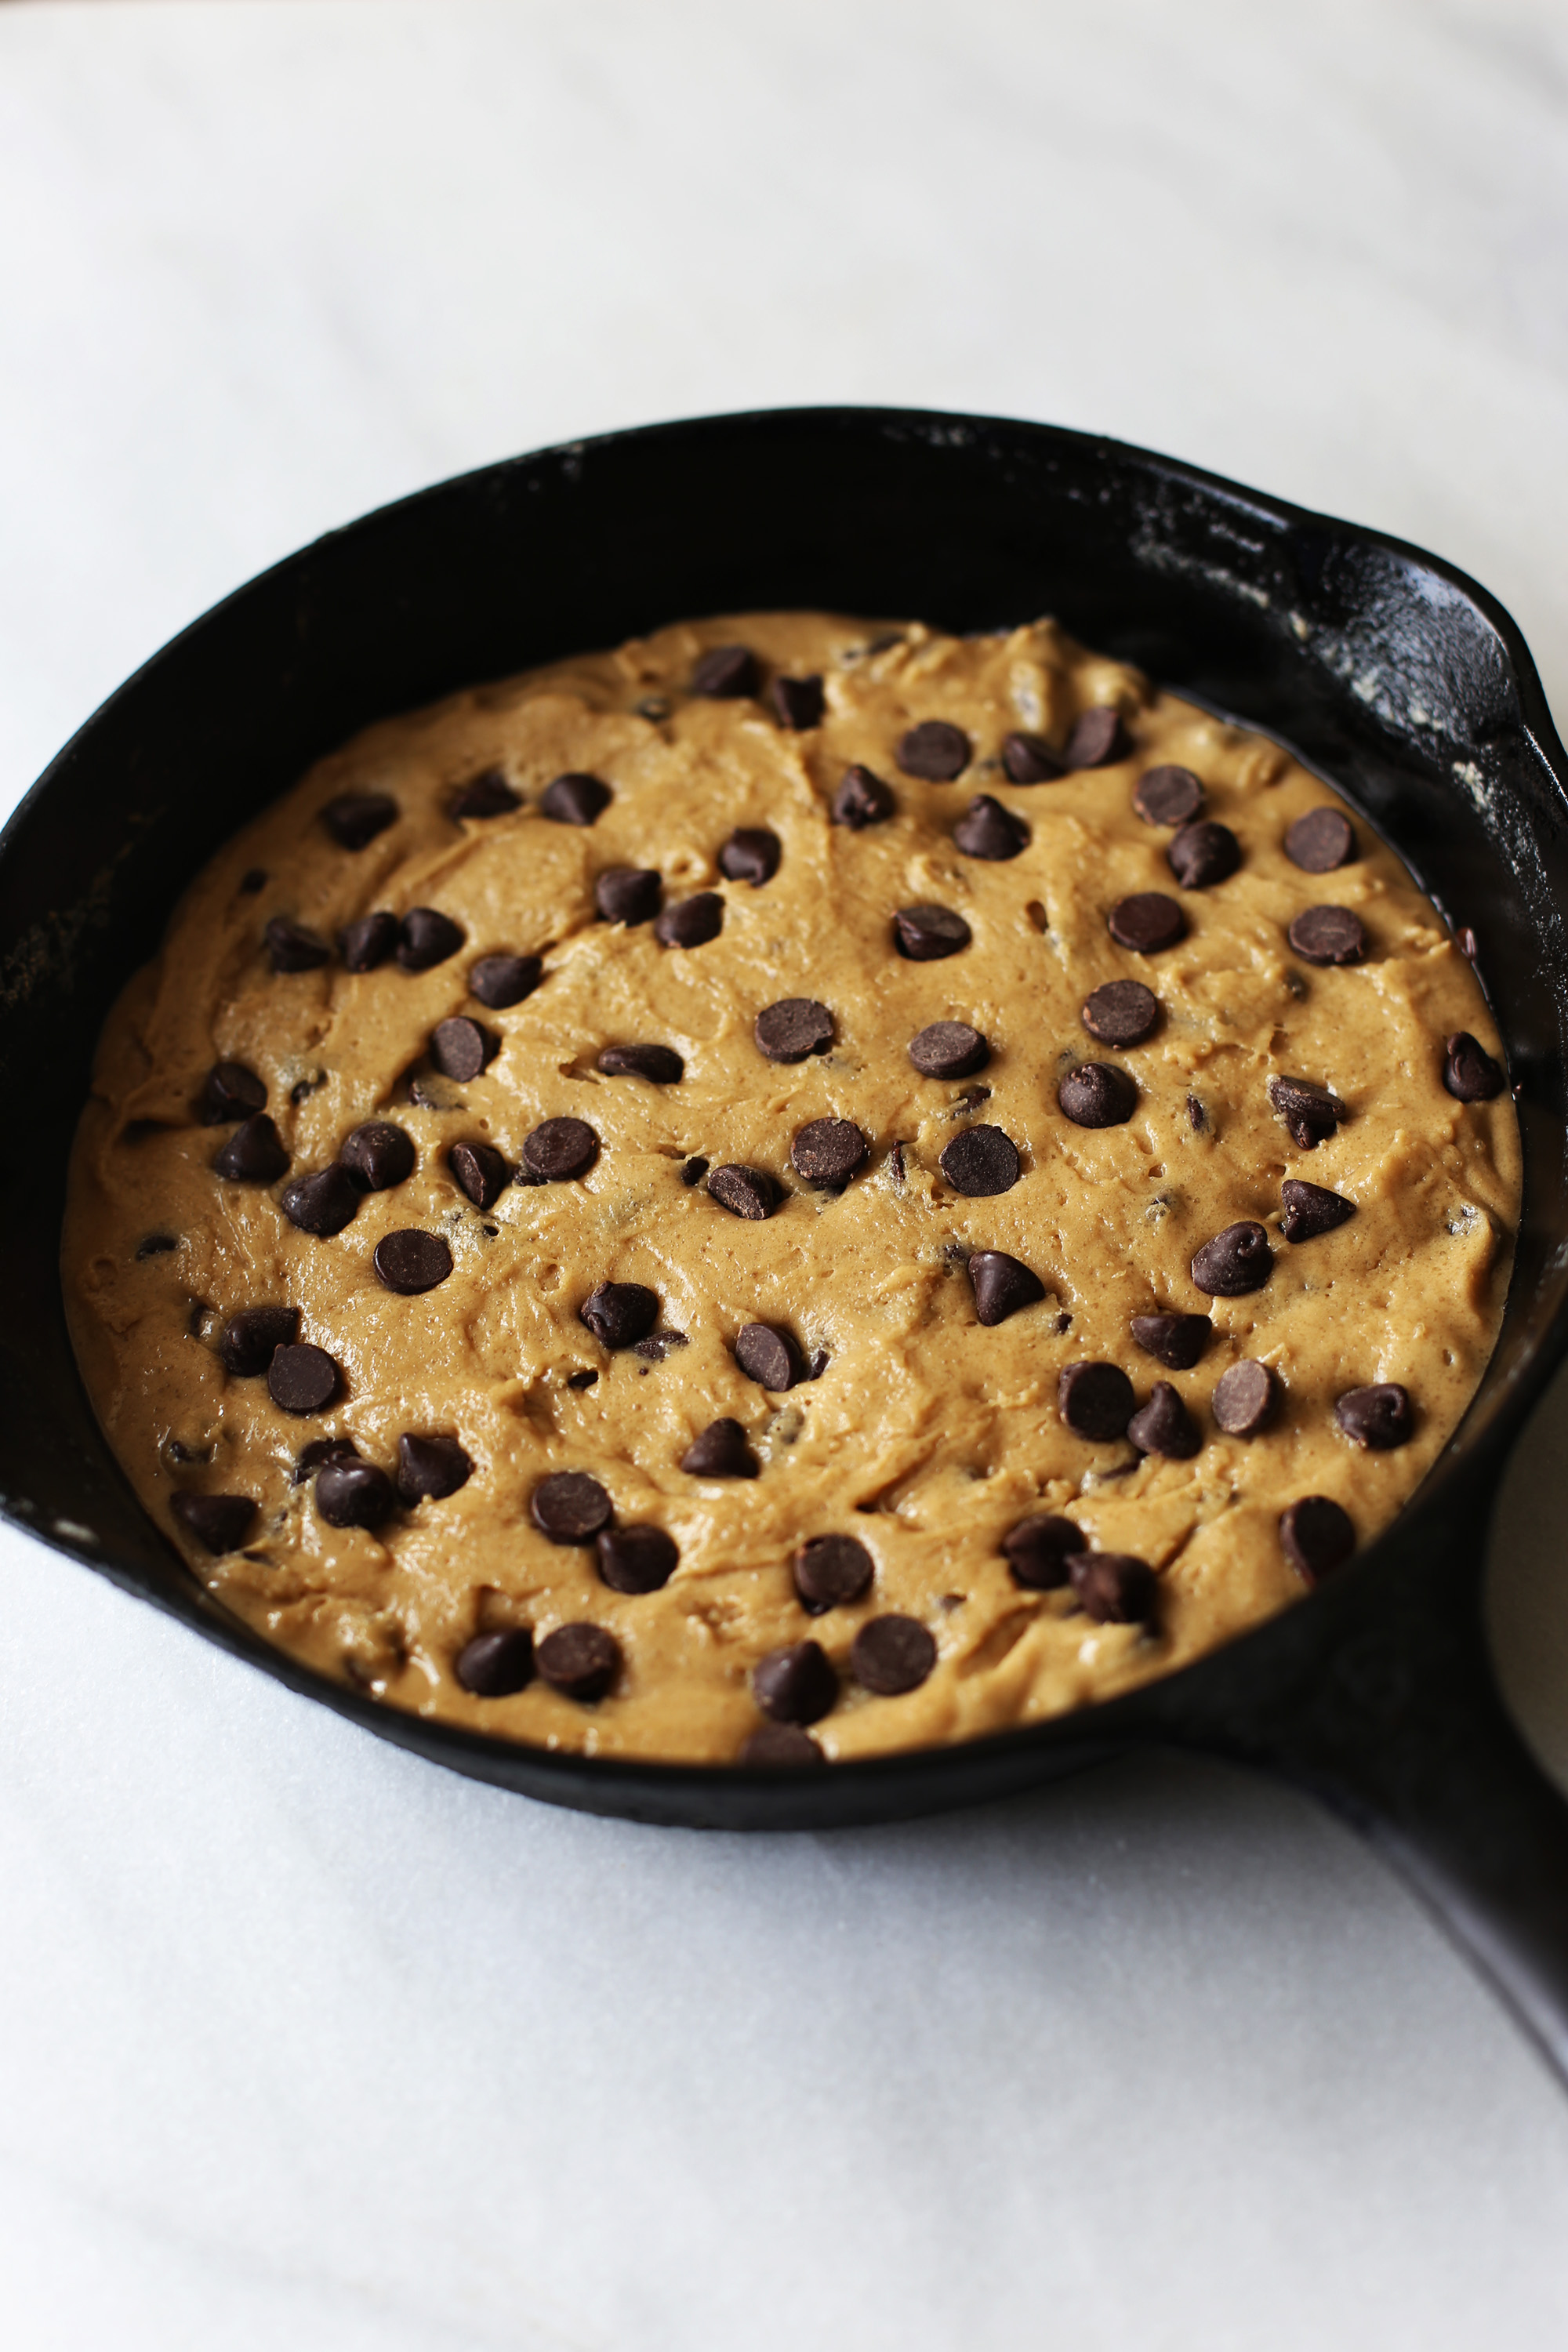 Browned Butter cast Iron Chocolate Chip Cookie